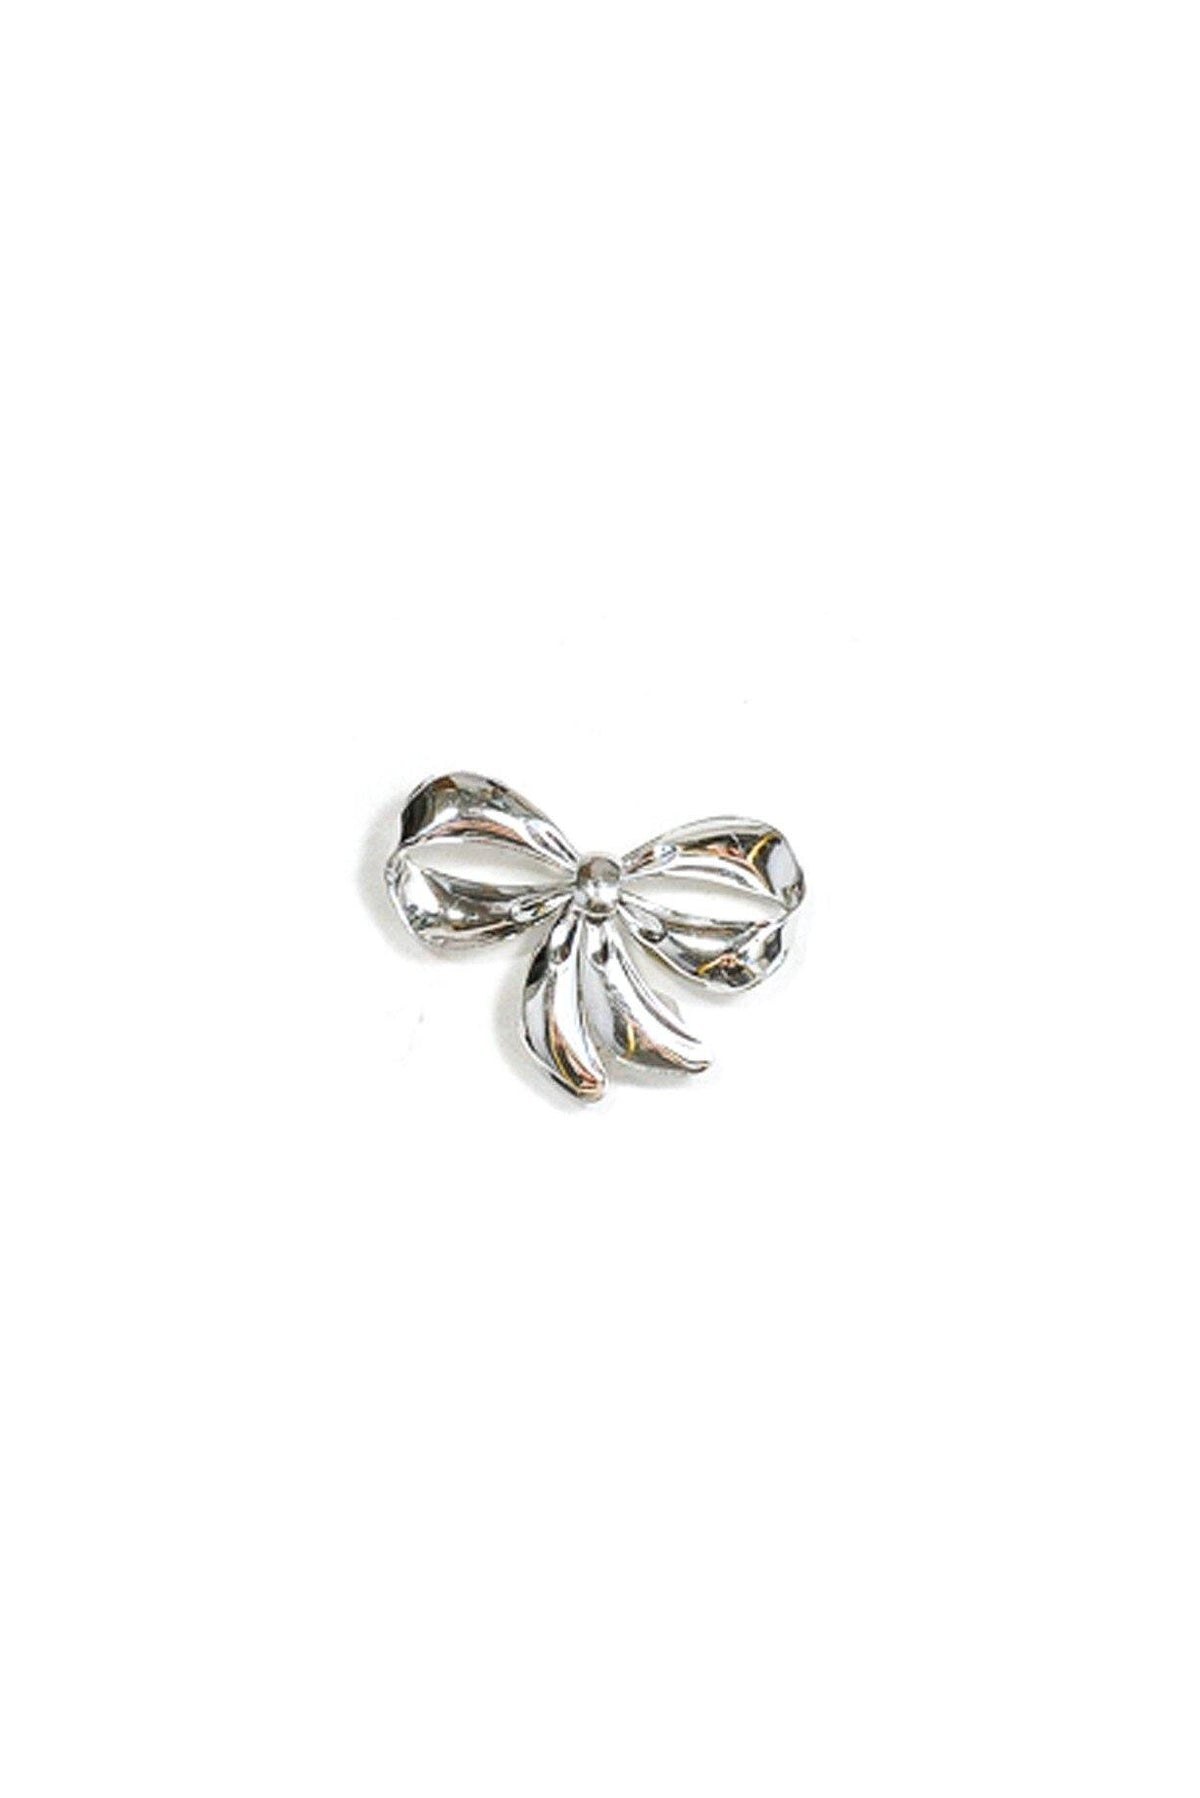 50's Vintage Sterling Silver Bow Brooch